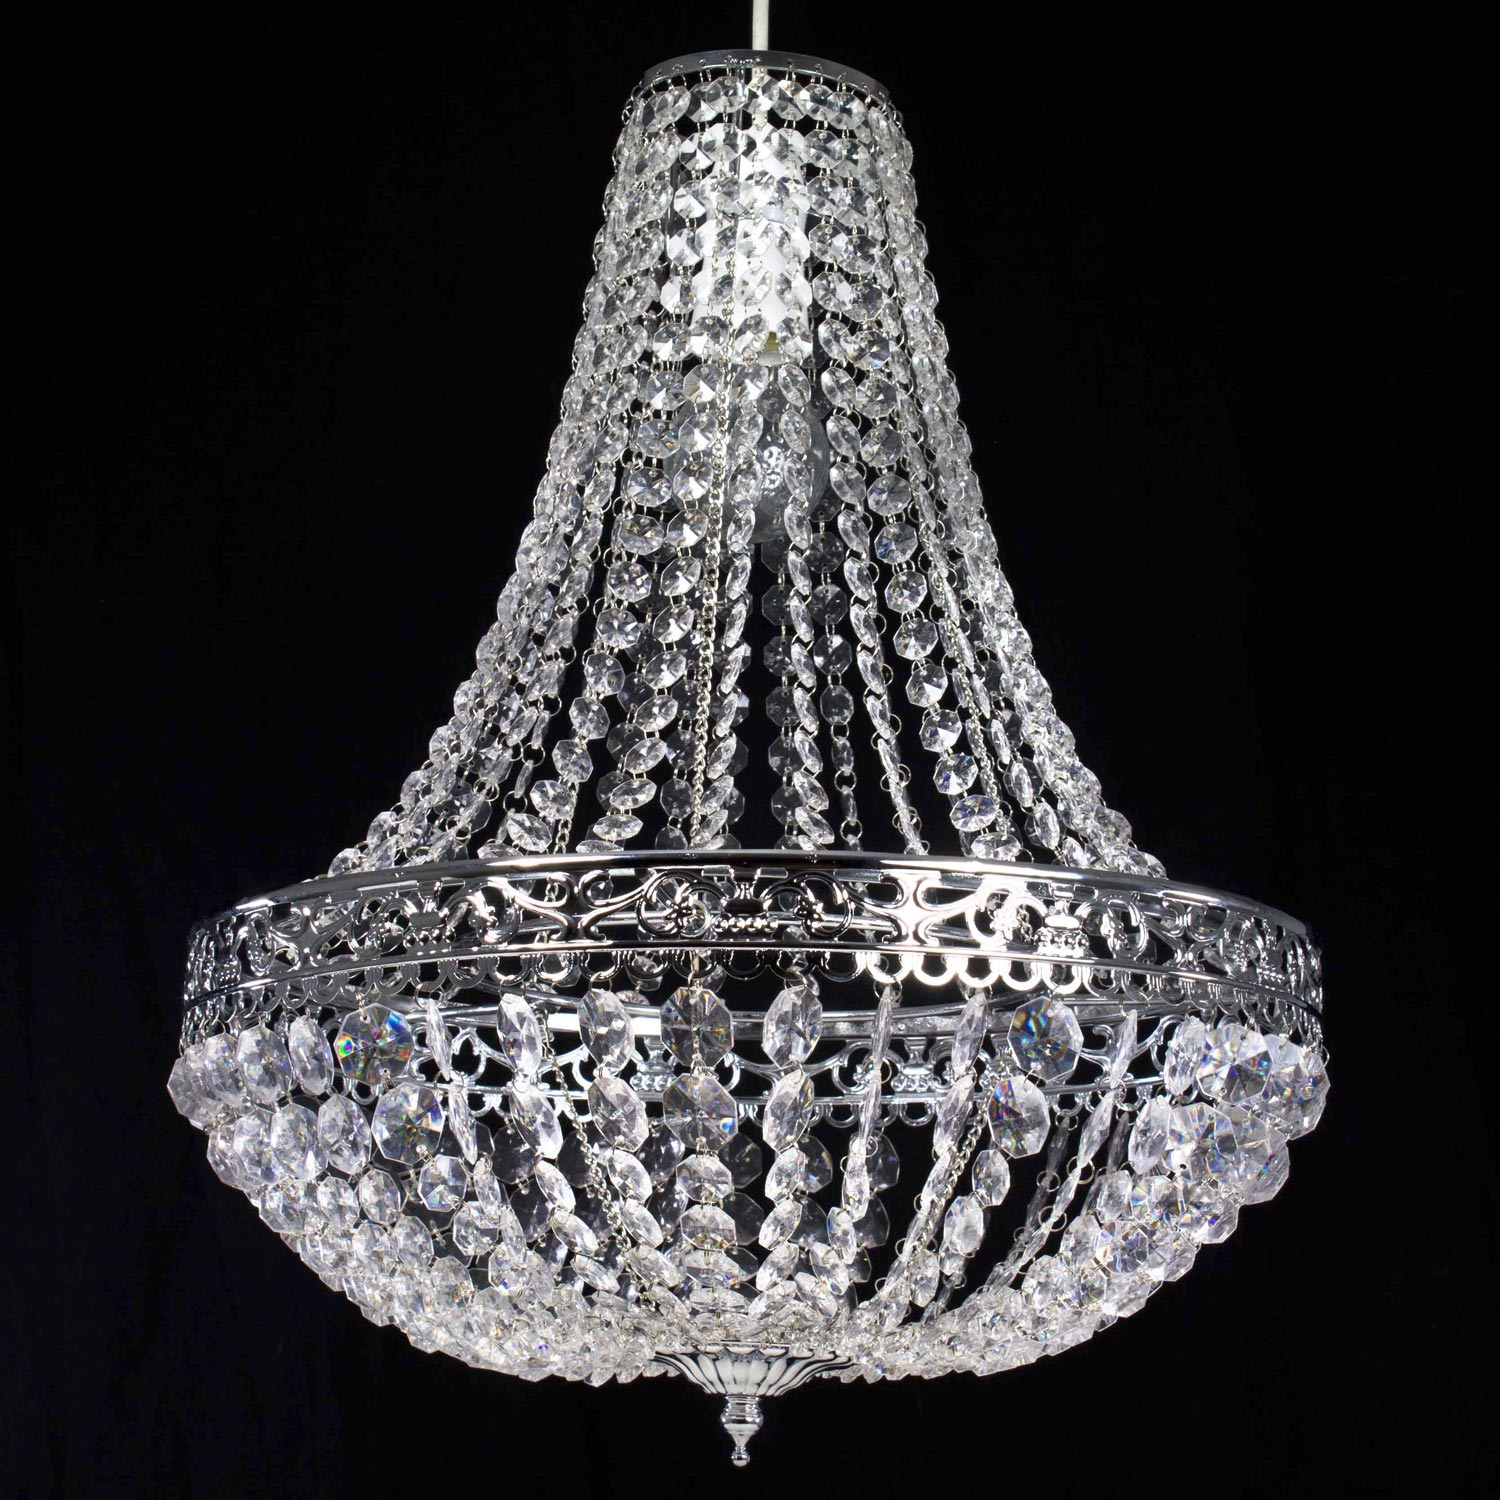 Lamp chandelier best lightstyle of orlando for home lighting redoubtable lightstyle of orlando magnificent lamps orlando design aloadofball Choice Image